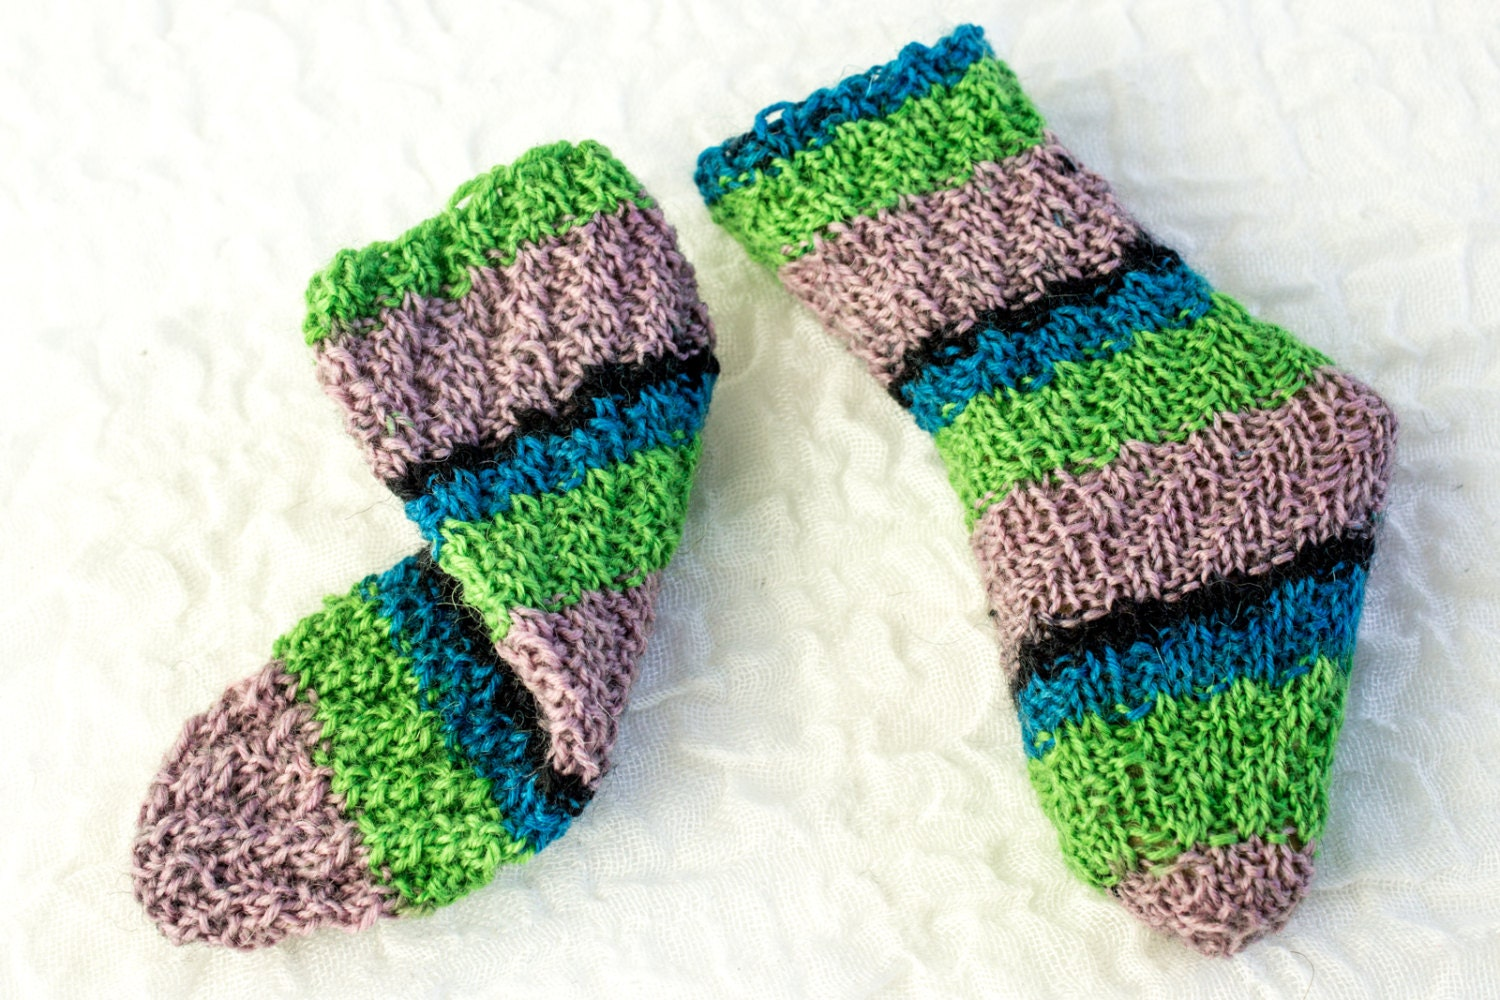 Spiral Socks Knitting Pattern : KNITTING PATTERN Baby Socks Tube Socks Knitted Magic Spiral